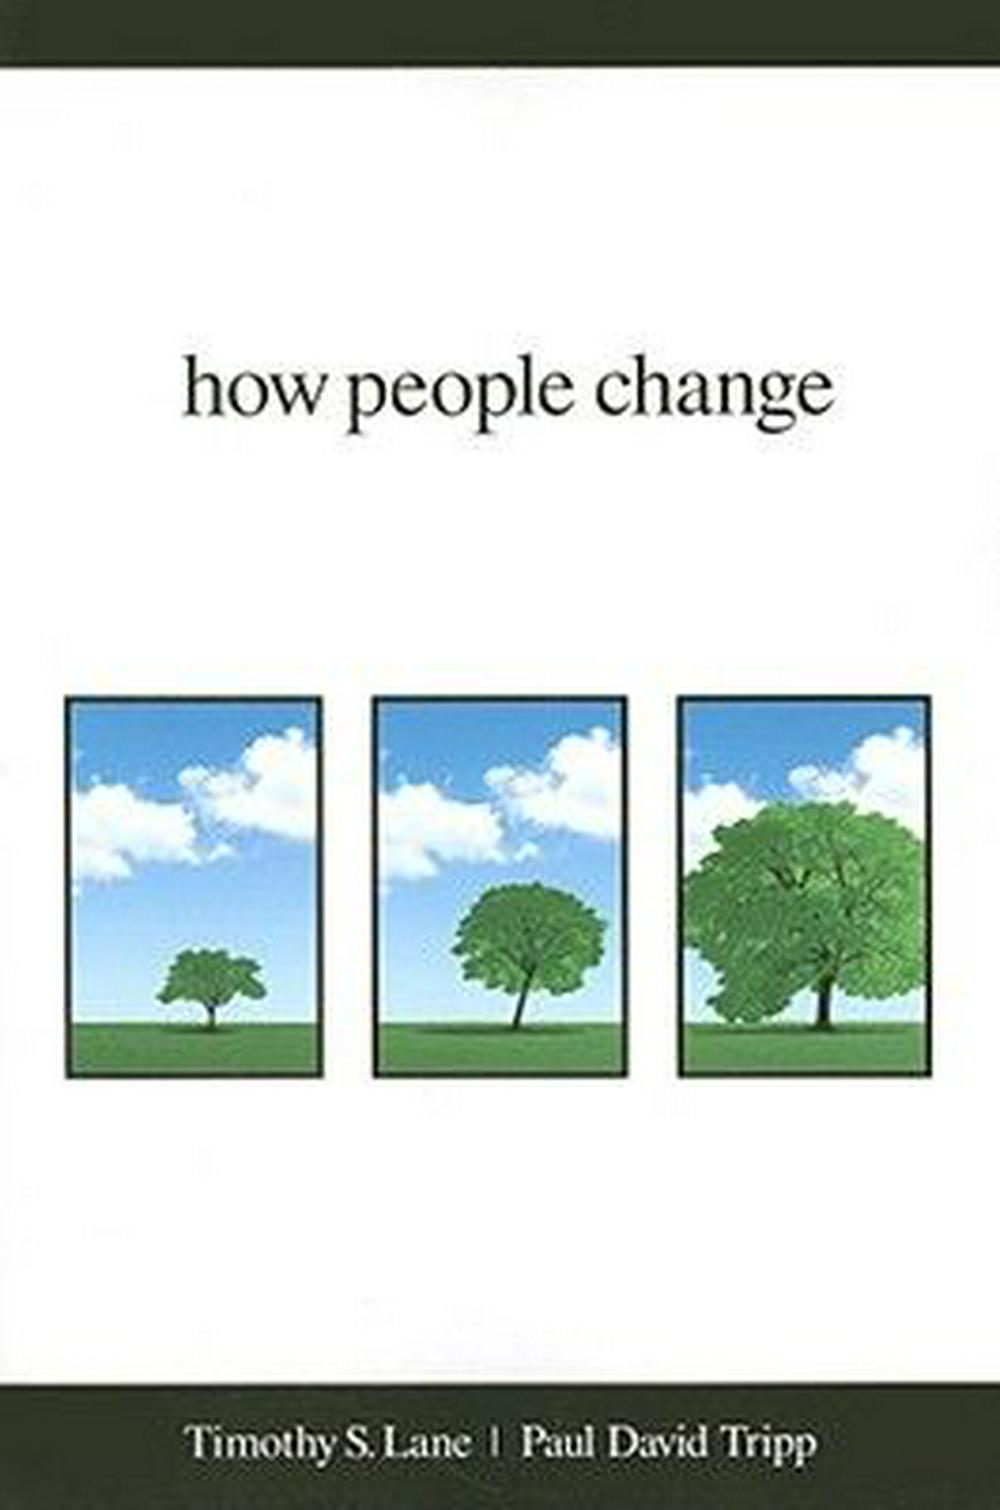 How People Change by Timothy S Lane, ISBN: 9781934885536